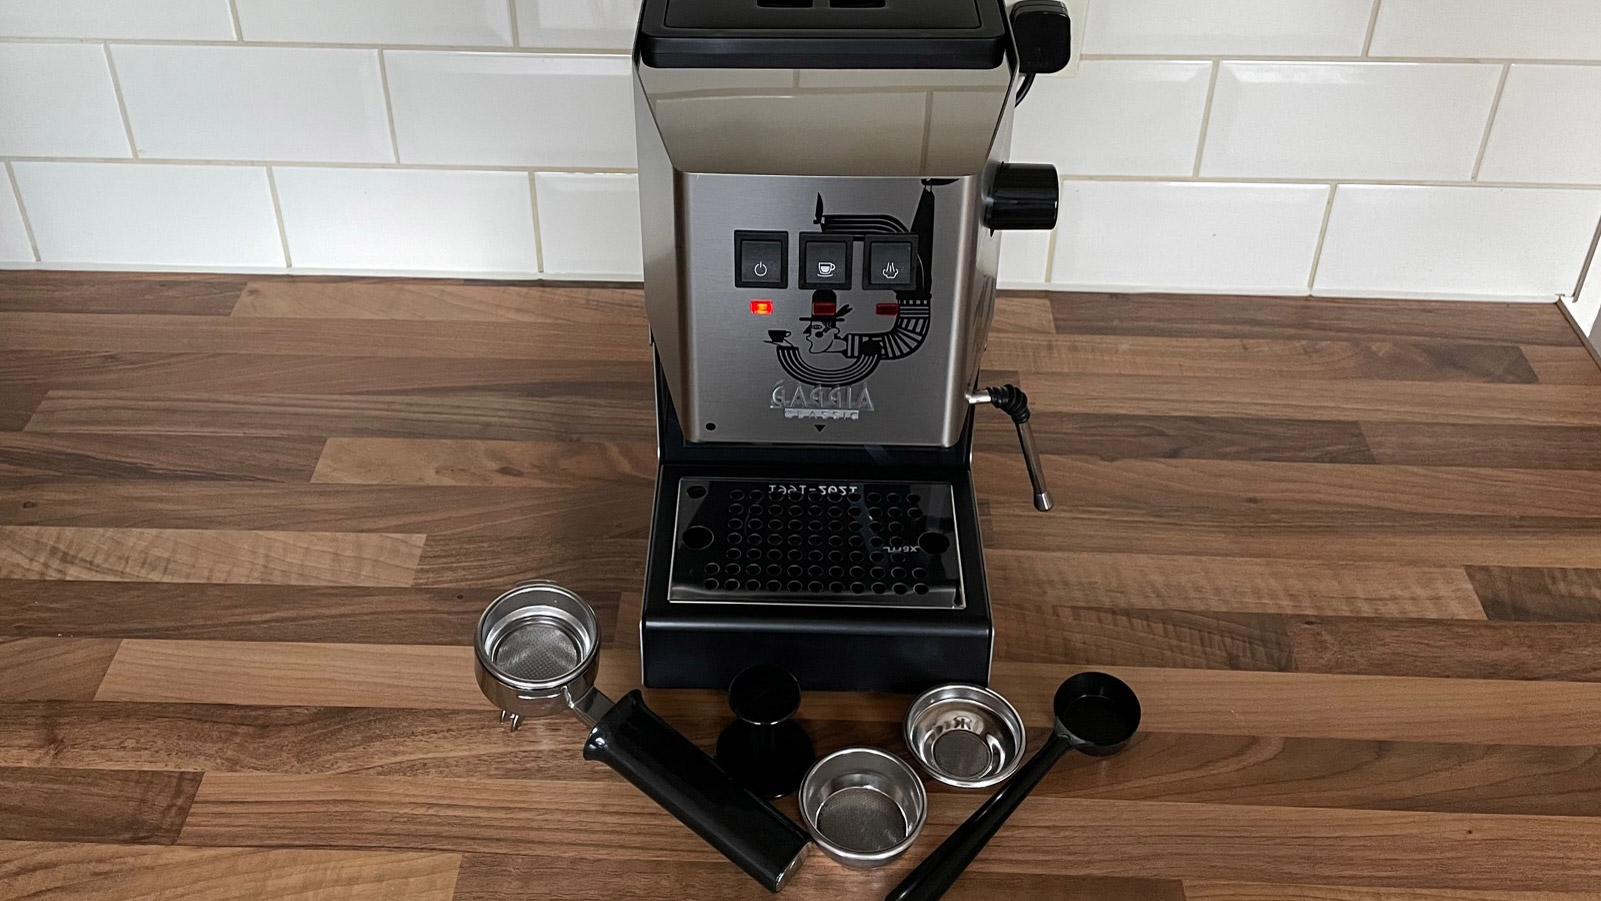 The Gaggia Classic and its accessories on a kitchen countertop